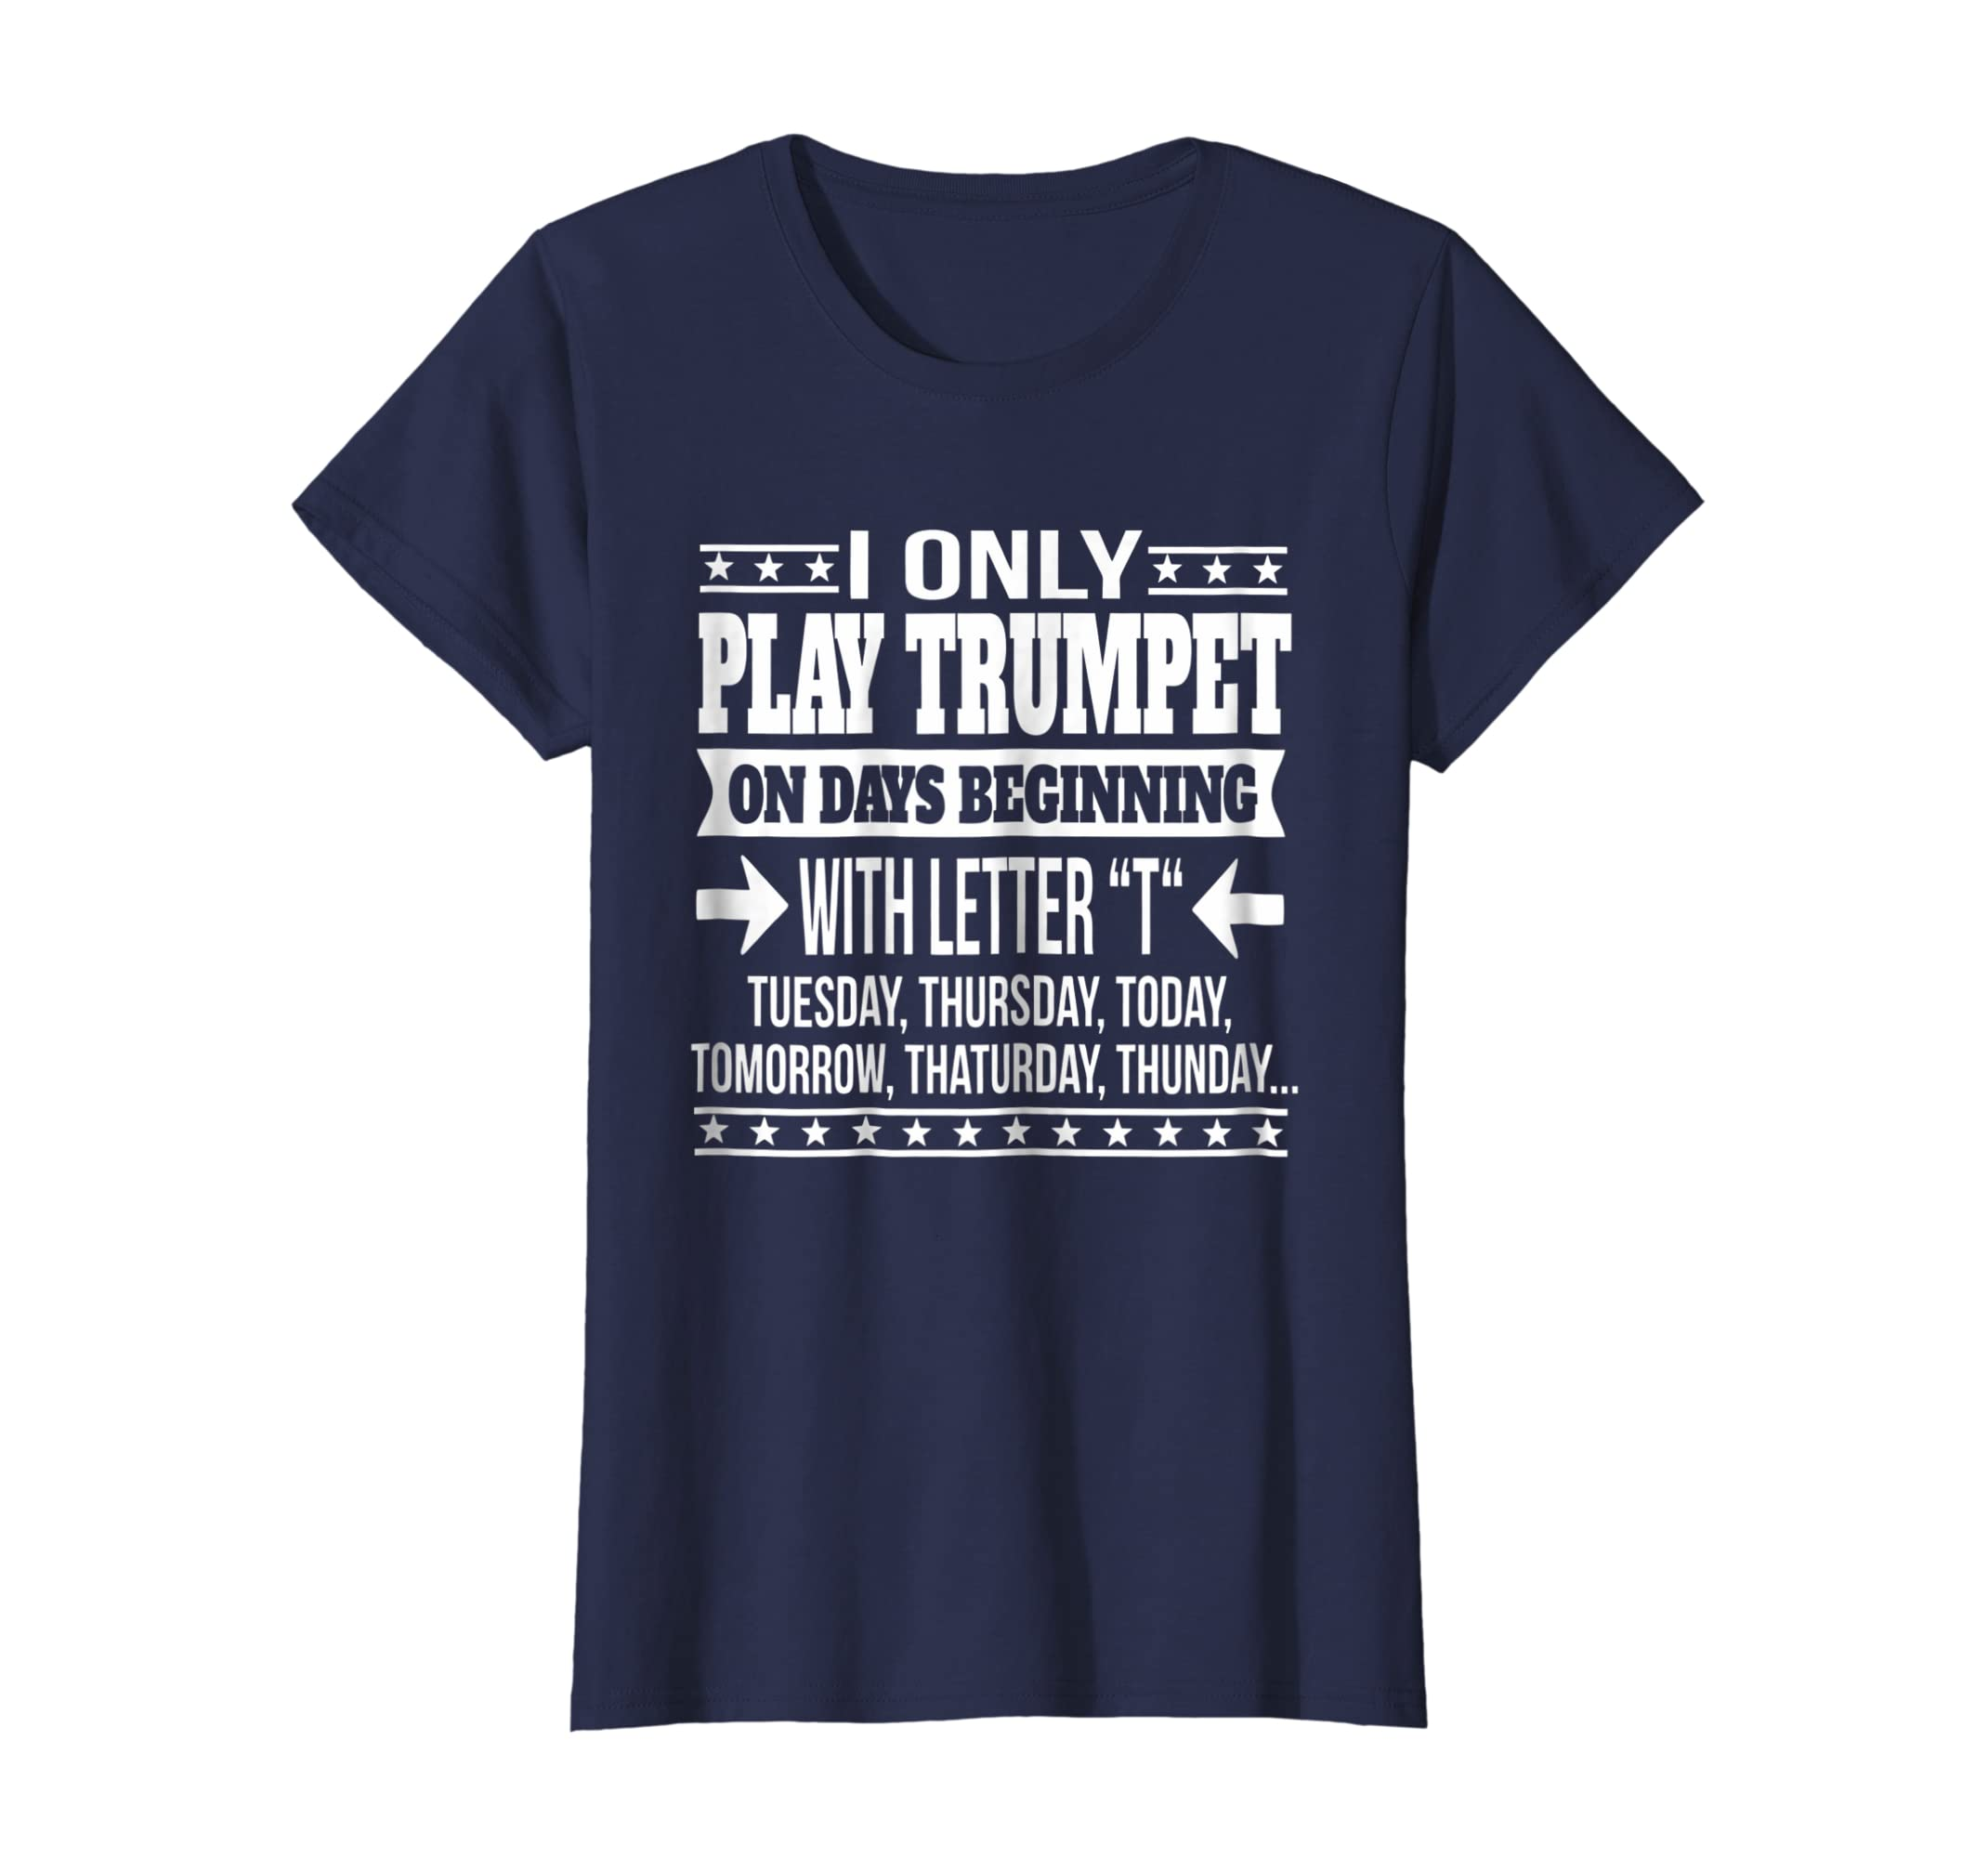 e0cba4a7c9 Amazon.com: Trumpet Gift T shirt Comical Trumpet Shirt Humorous Tee:  Clothing